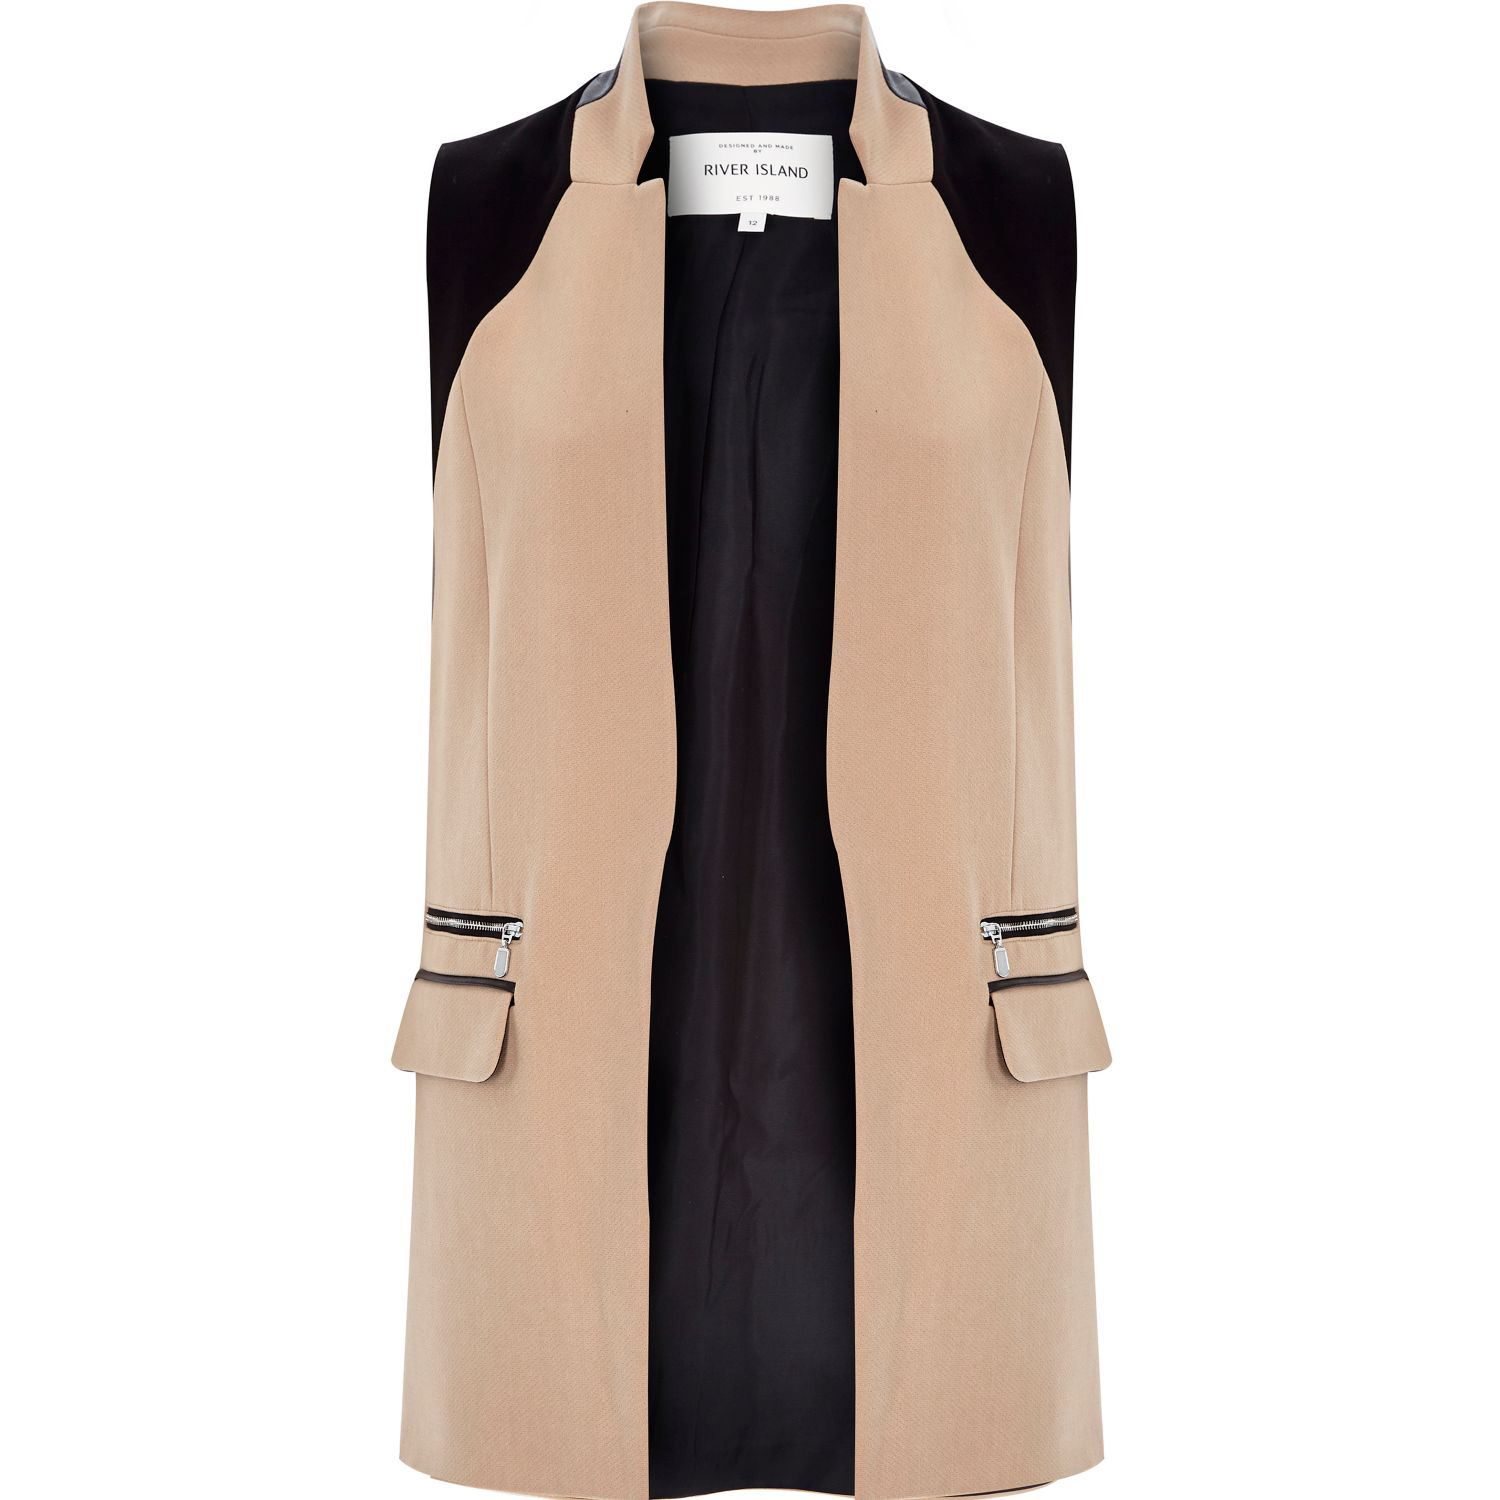 085b82c3be467 River Island Brown Fitted Longline Sleeveless Jacket in Brown - Lyst